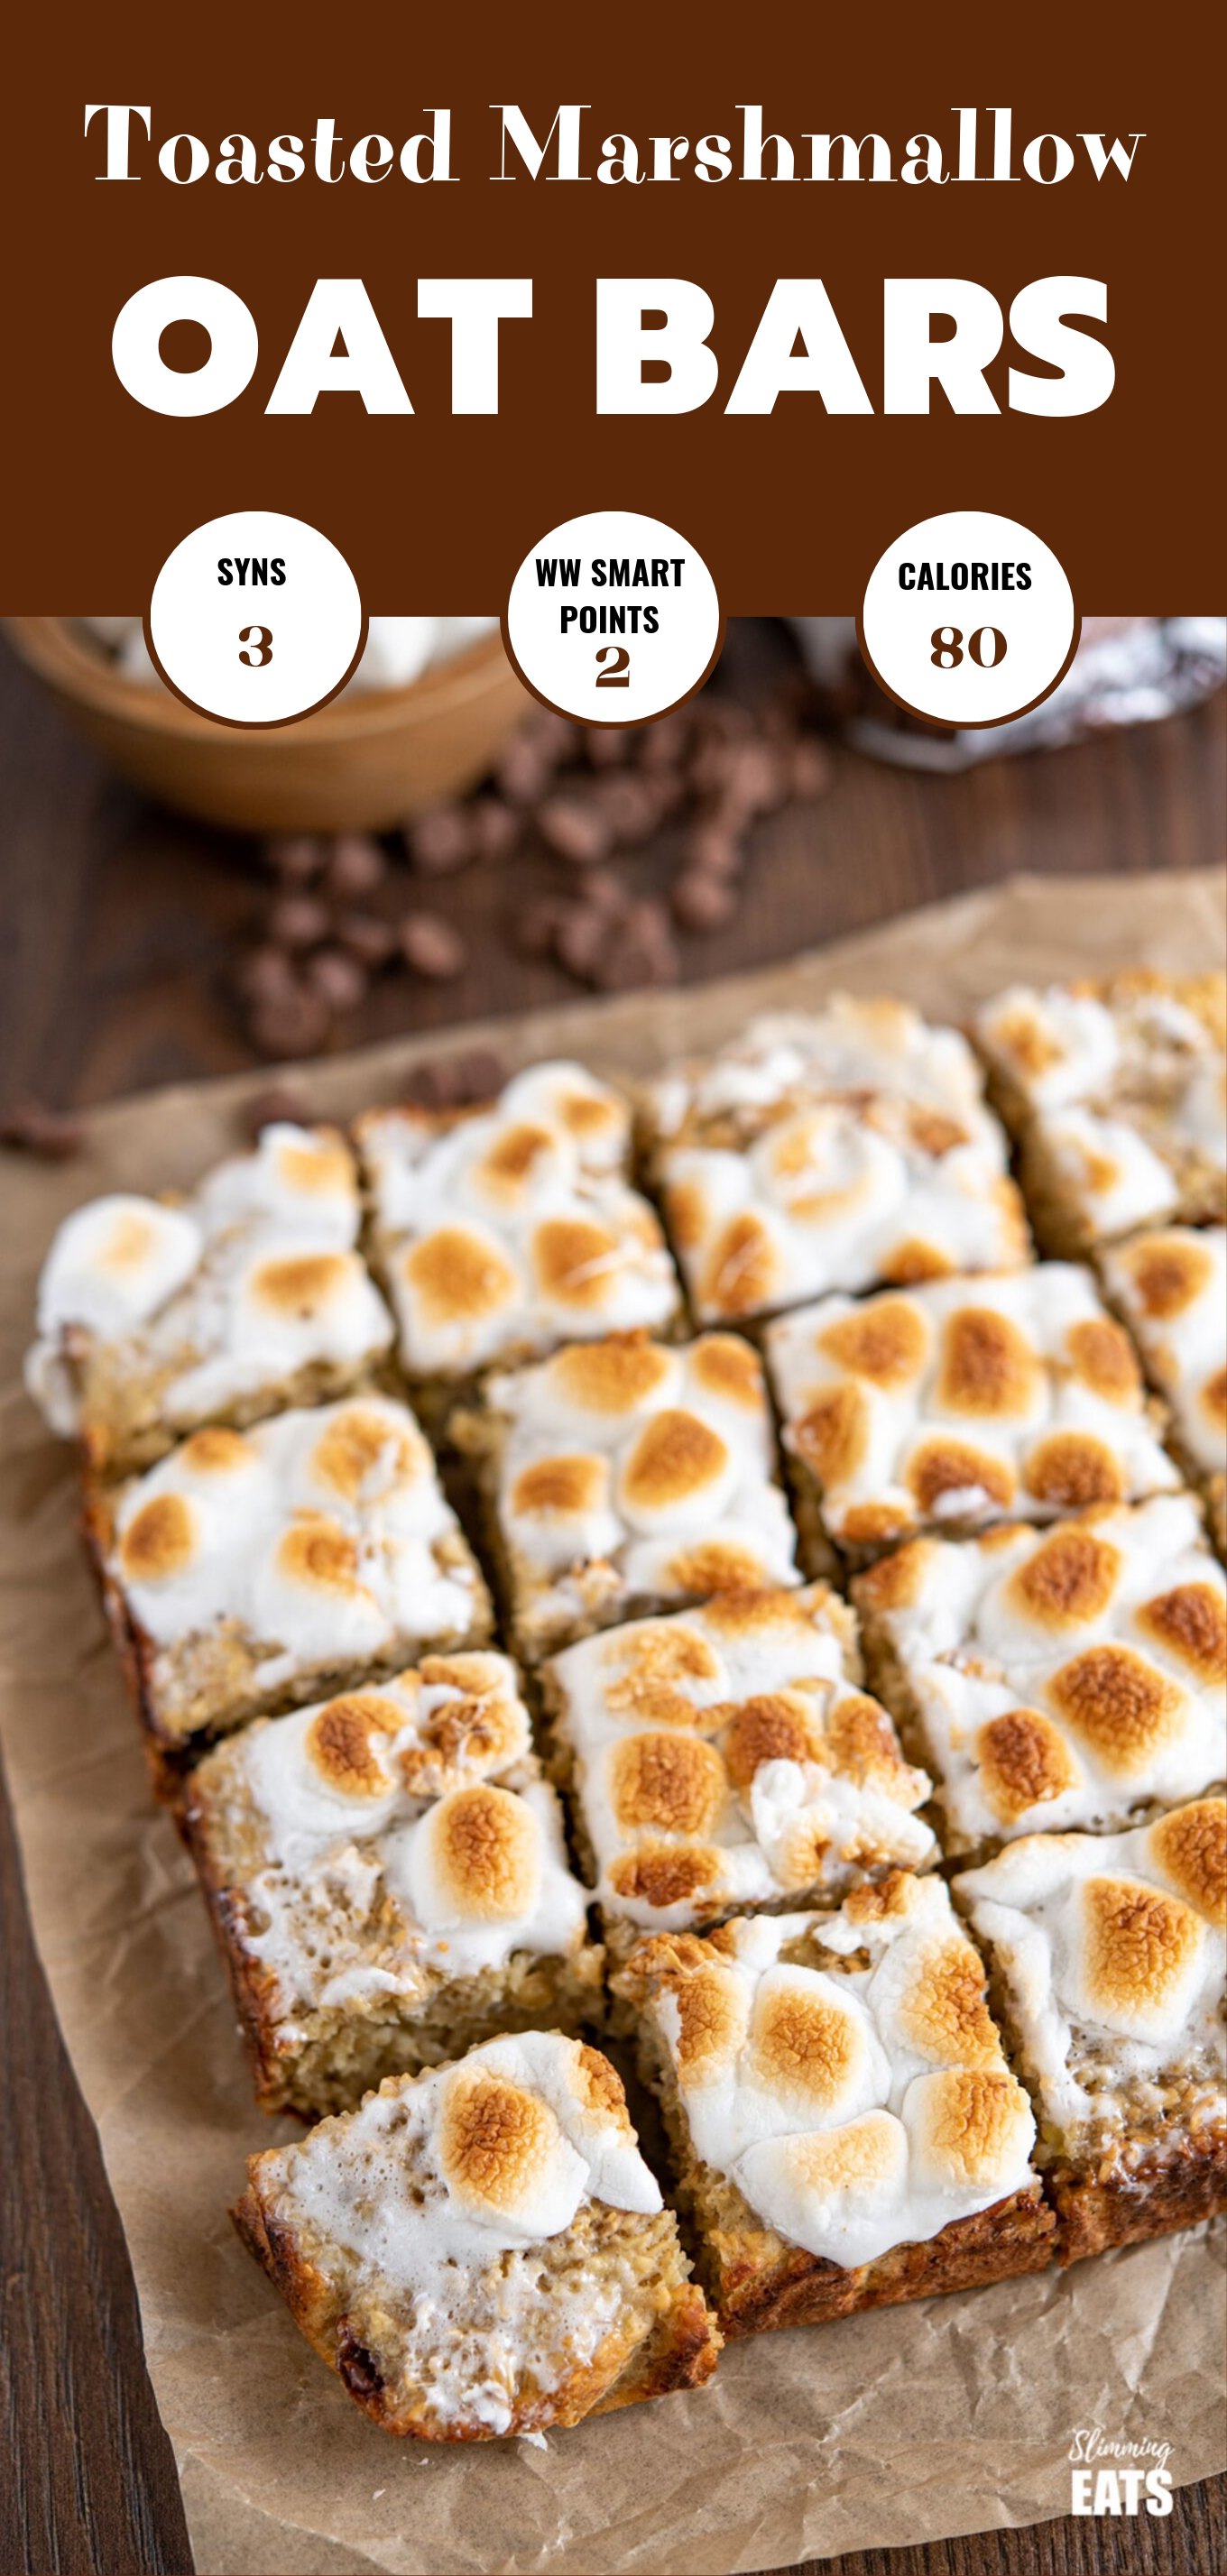 TOASTED MARSHMALLOW OAT BARS FEATURED PIN